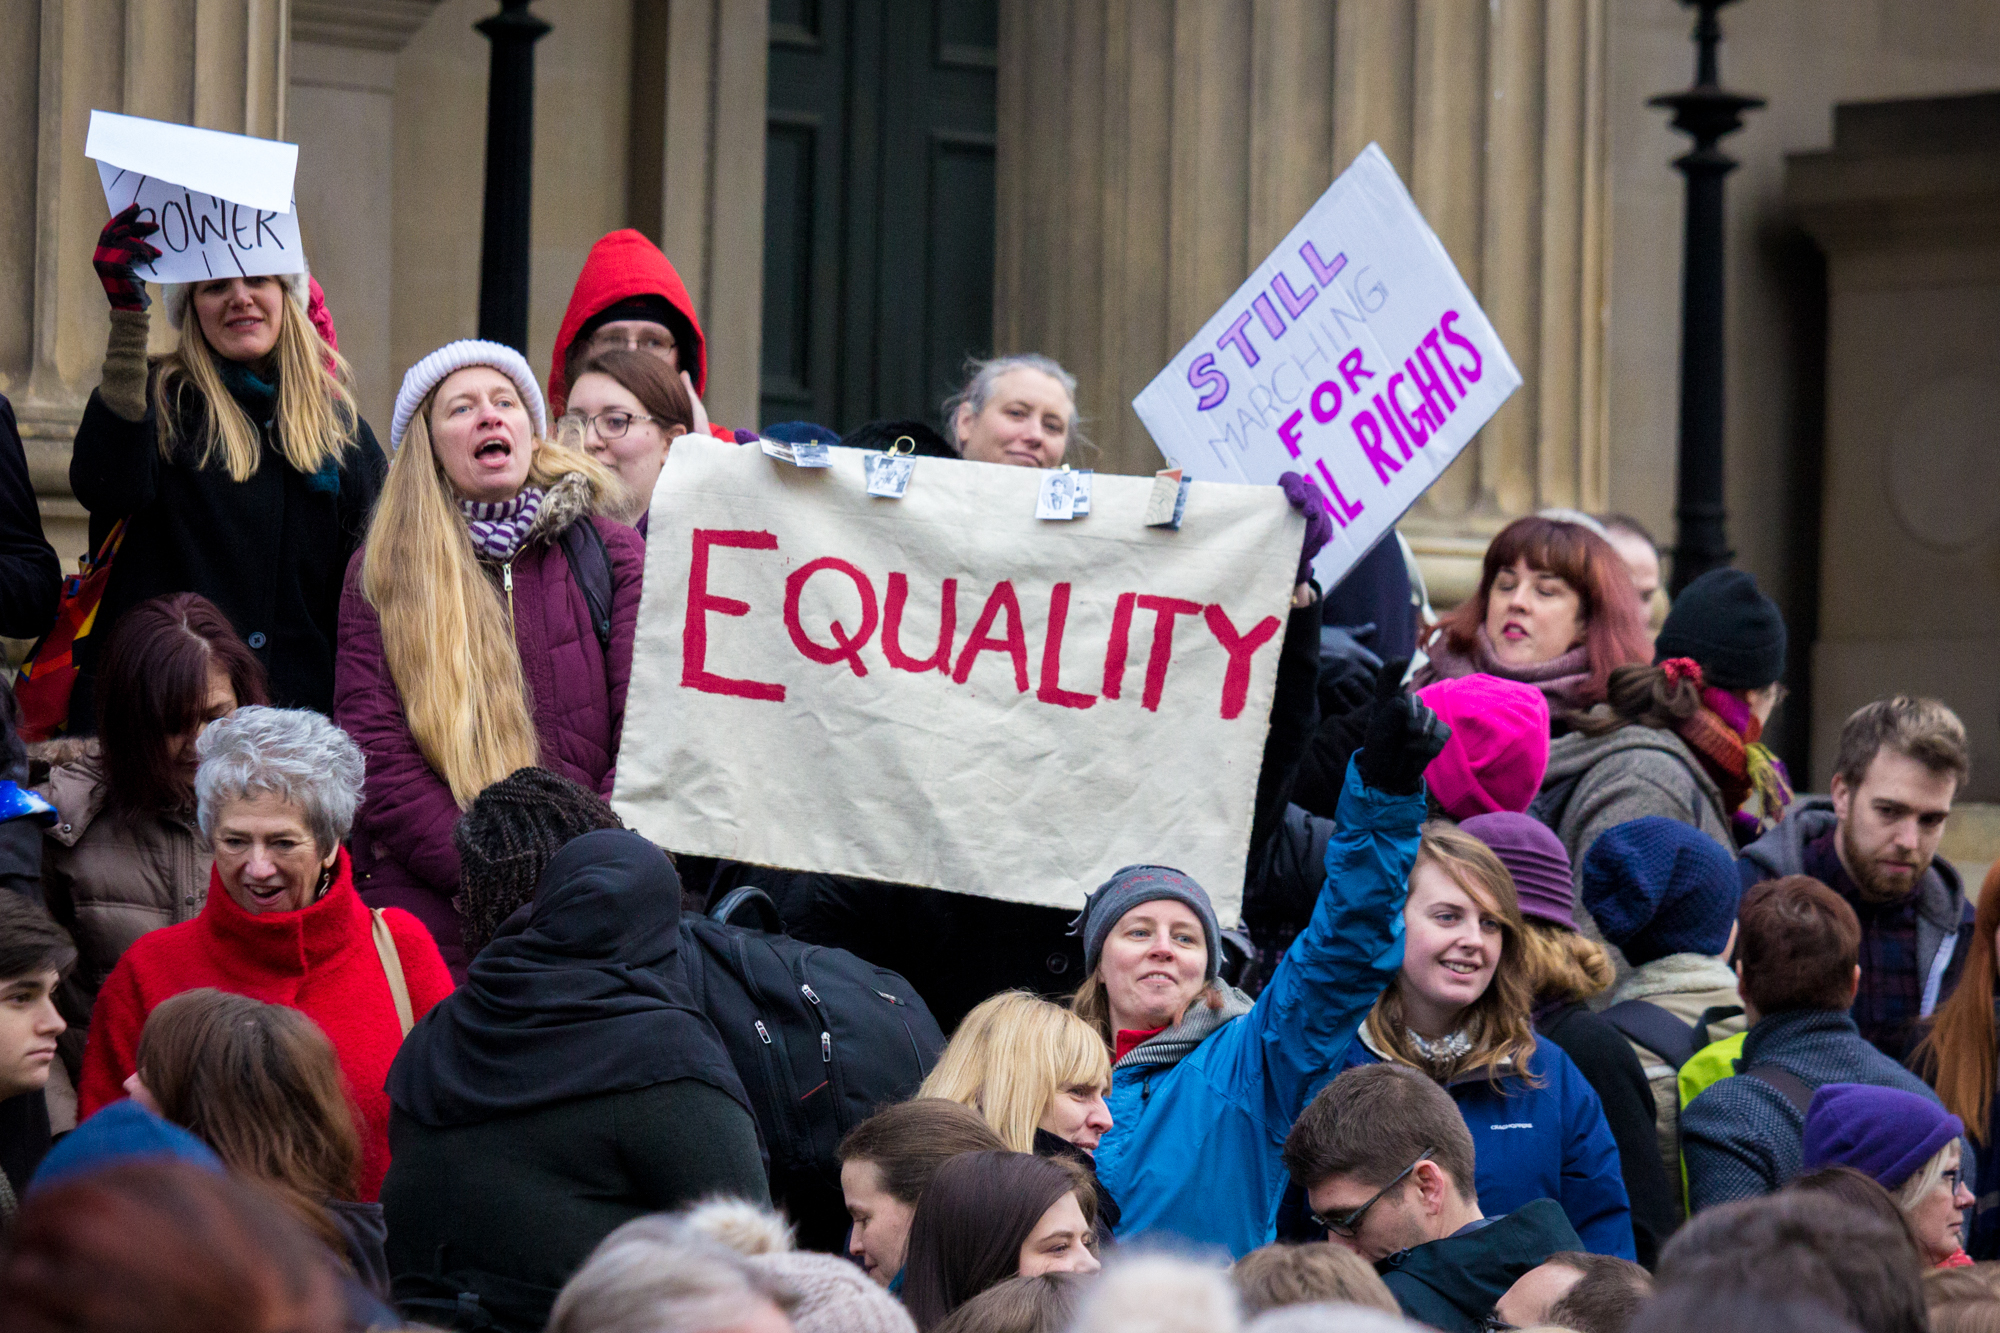 Signs_at_Women's_March_Liverpool.jpg